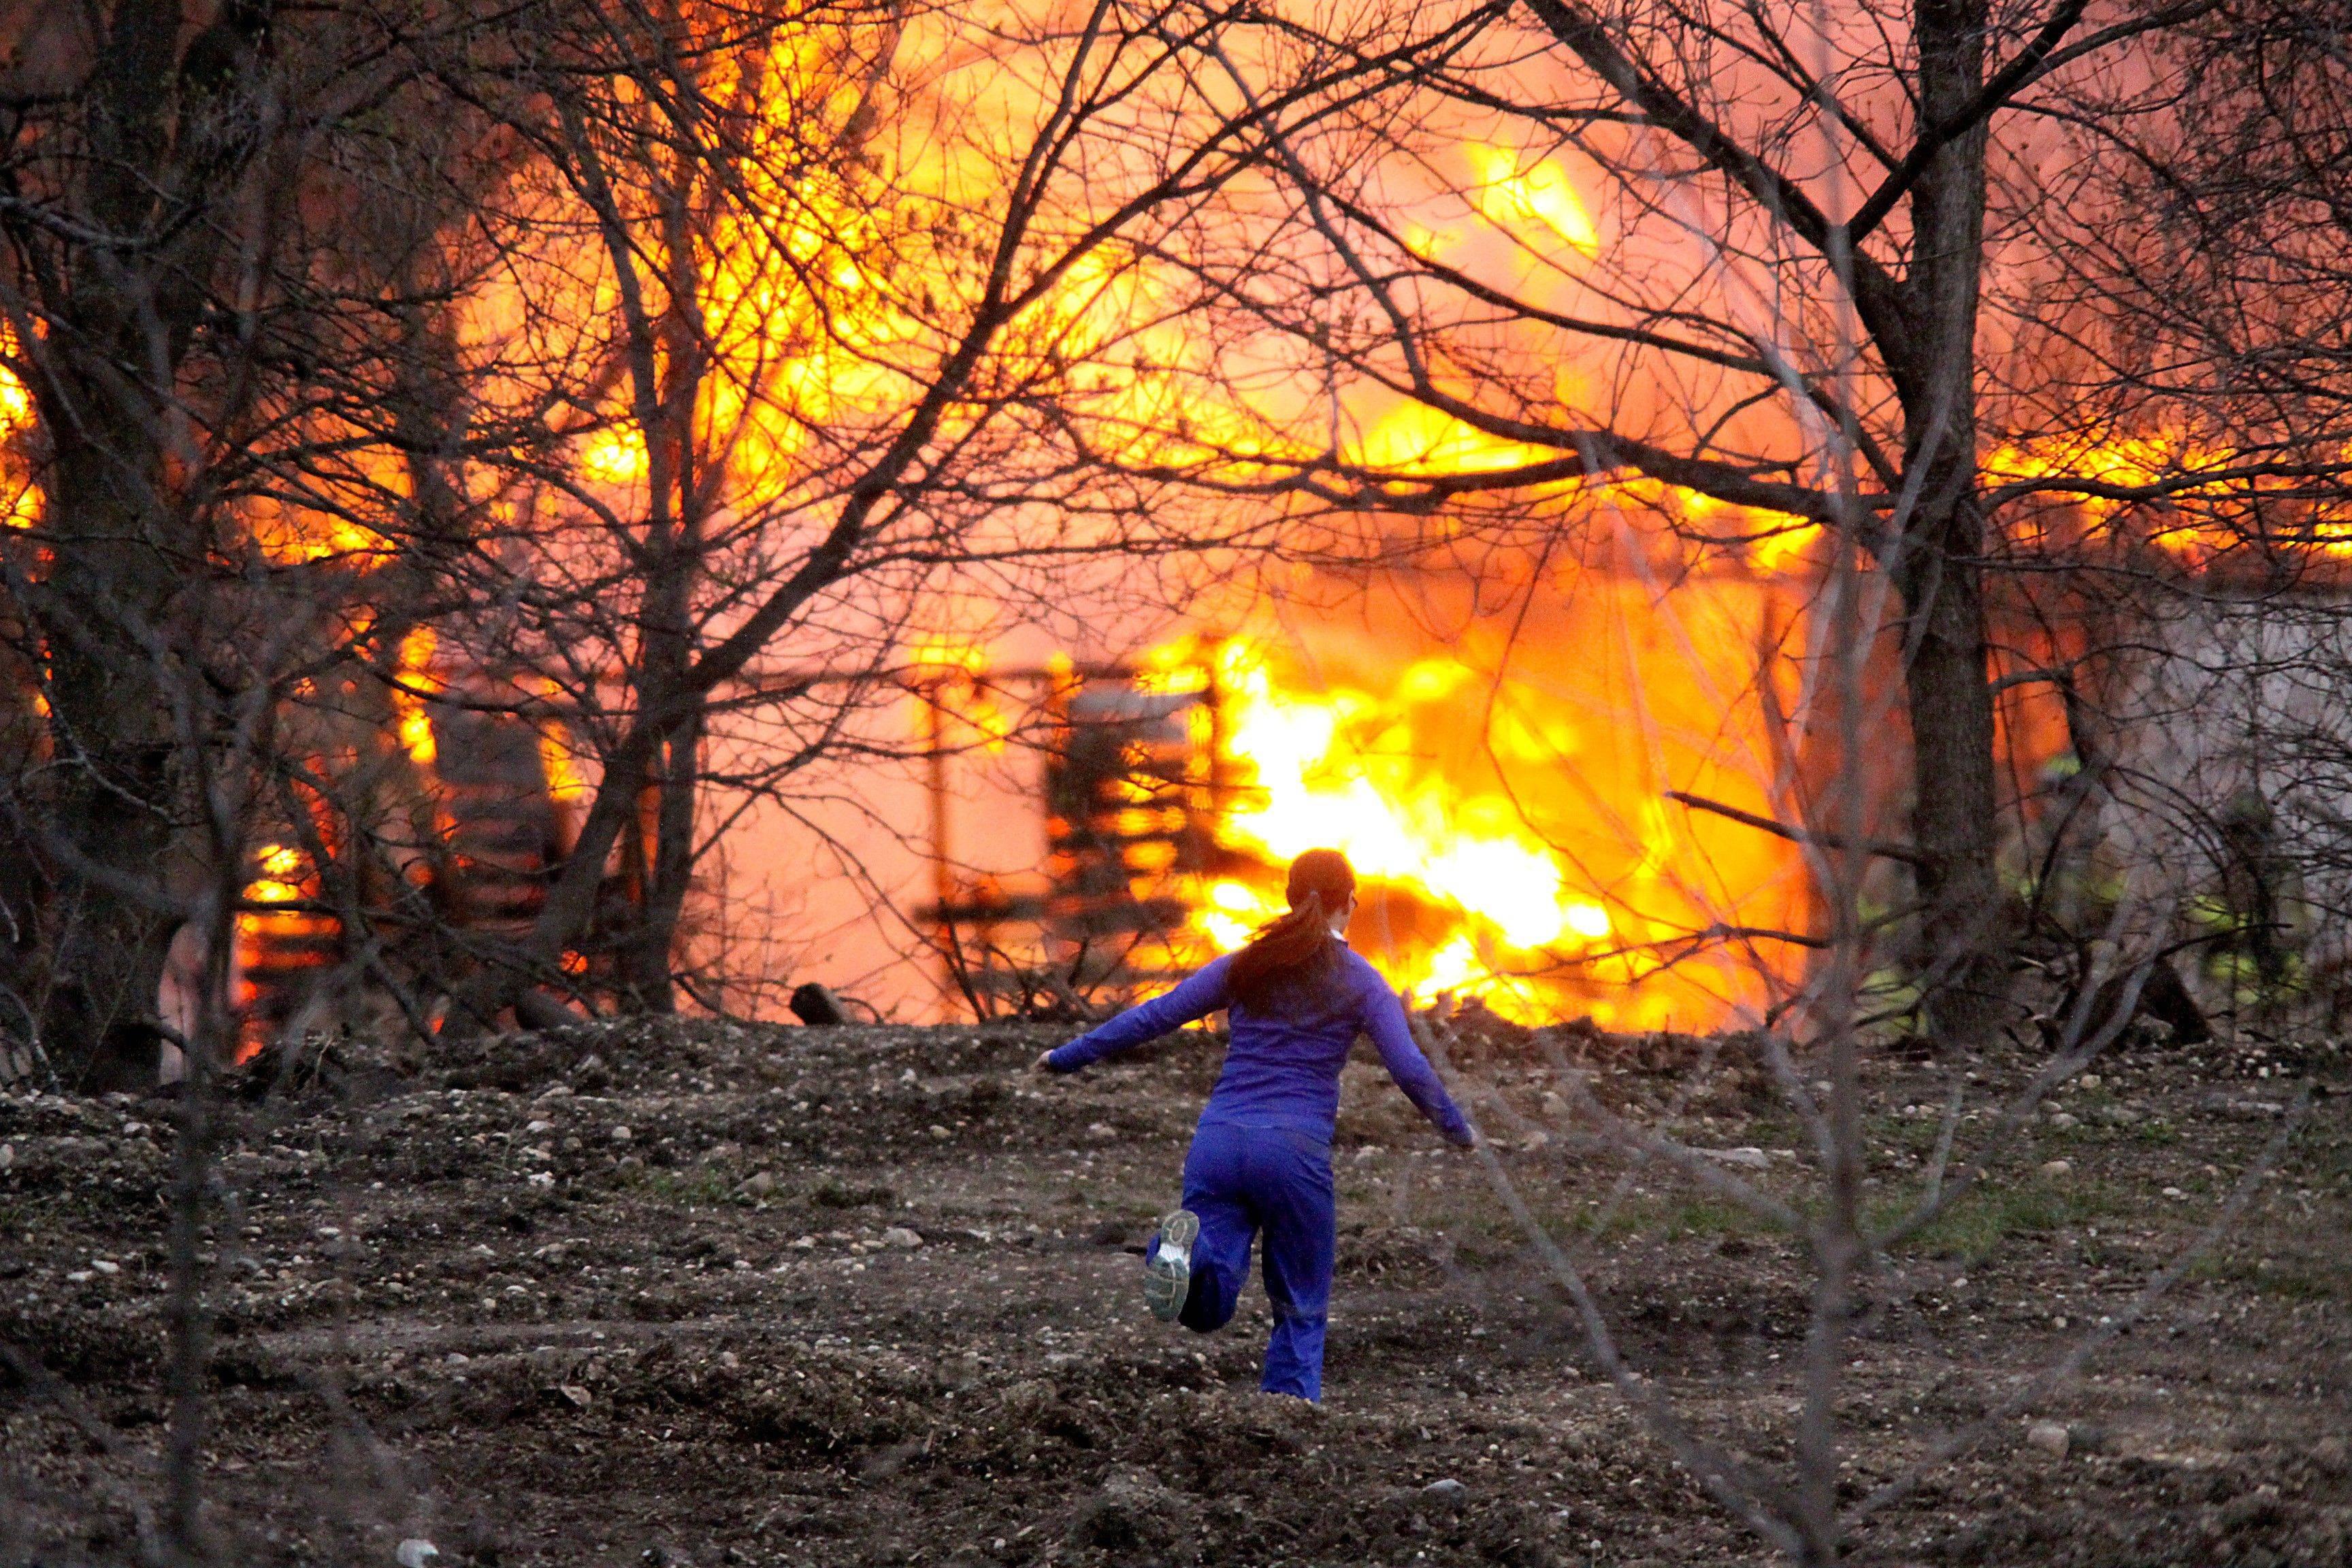 Onlookers watch a fire burn near Huntley on Thursday night.